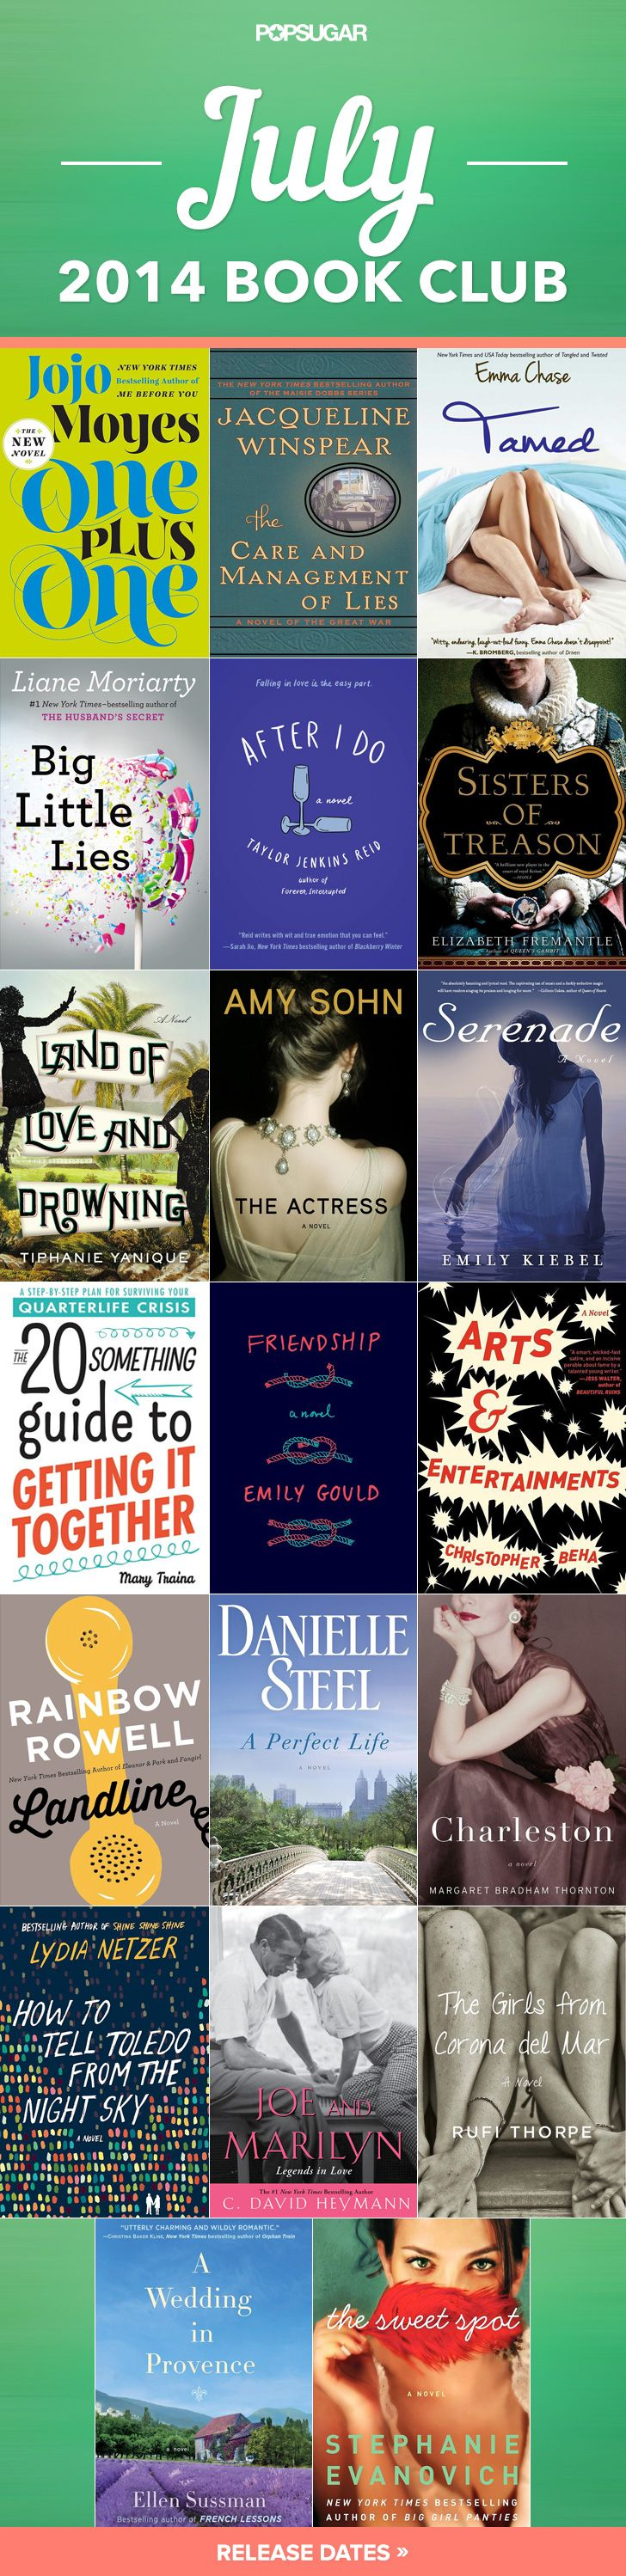 So many sexy, funny, sweet, and intriguing new books out this month! #July2014 #summerreading #beachreads